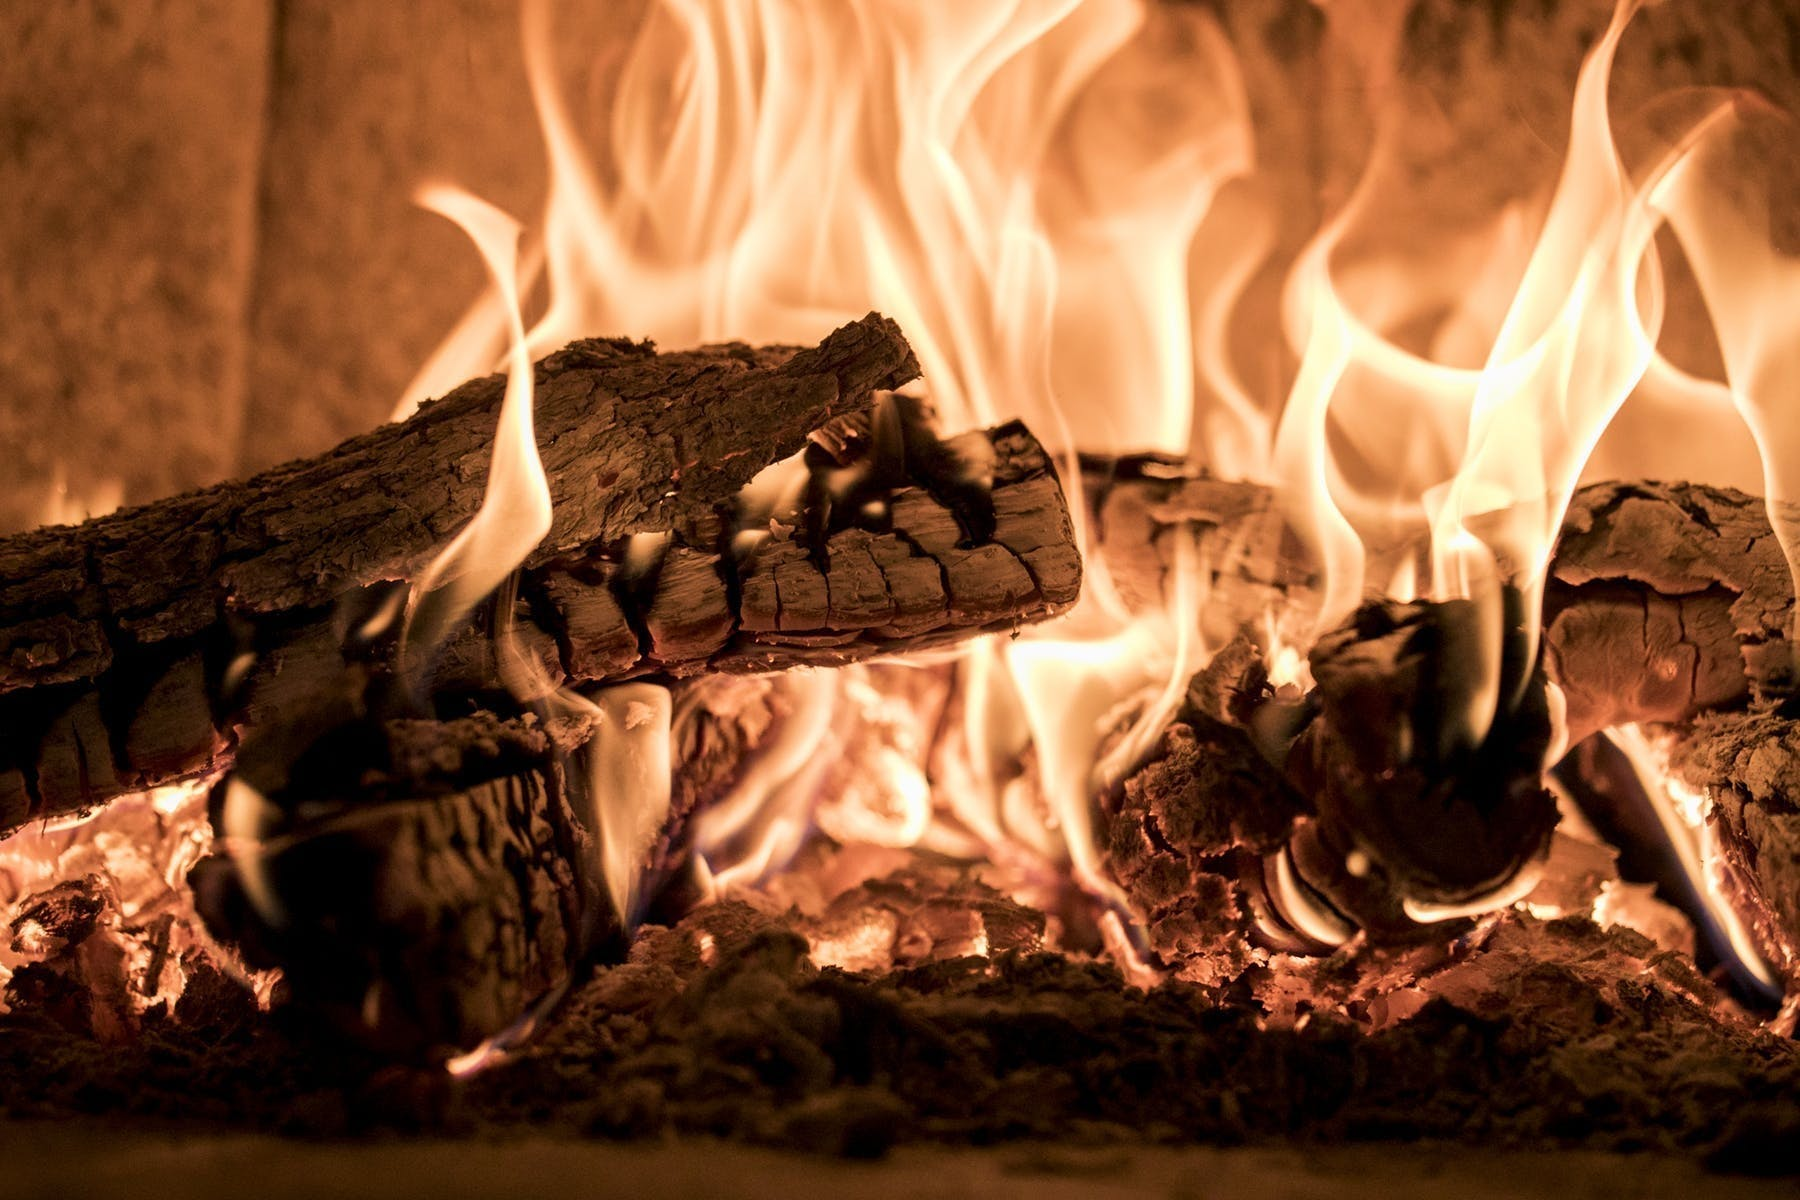 a close up of a fire